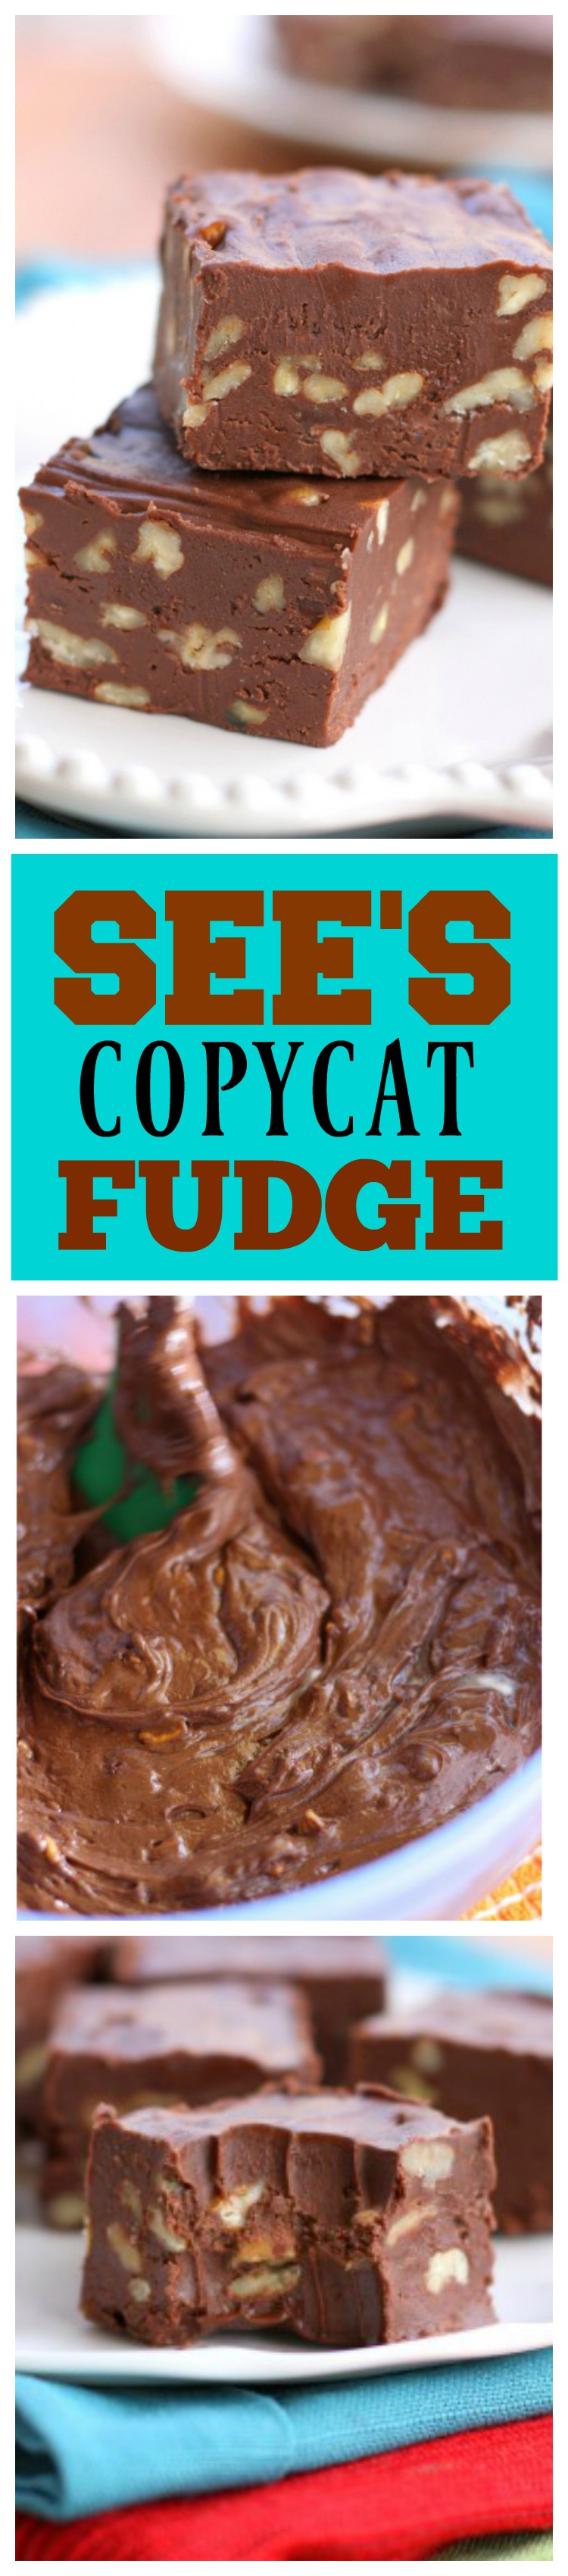 Sees Copycat Fudge is perfect and creamy. No candy thermometer required!